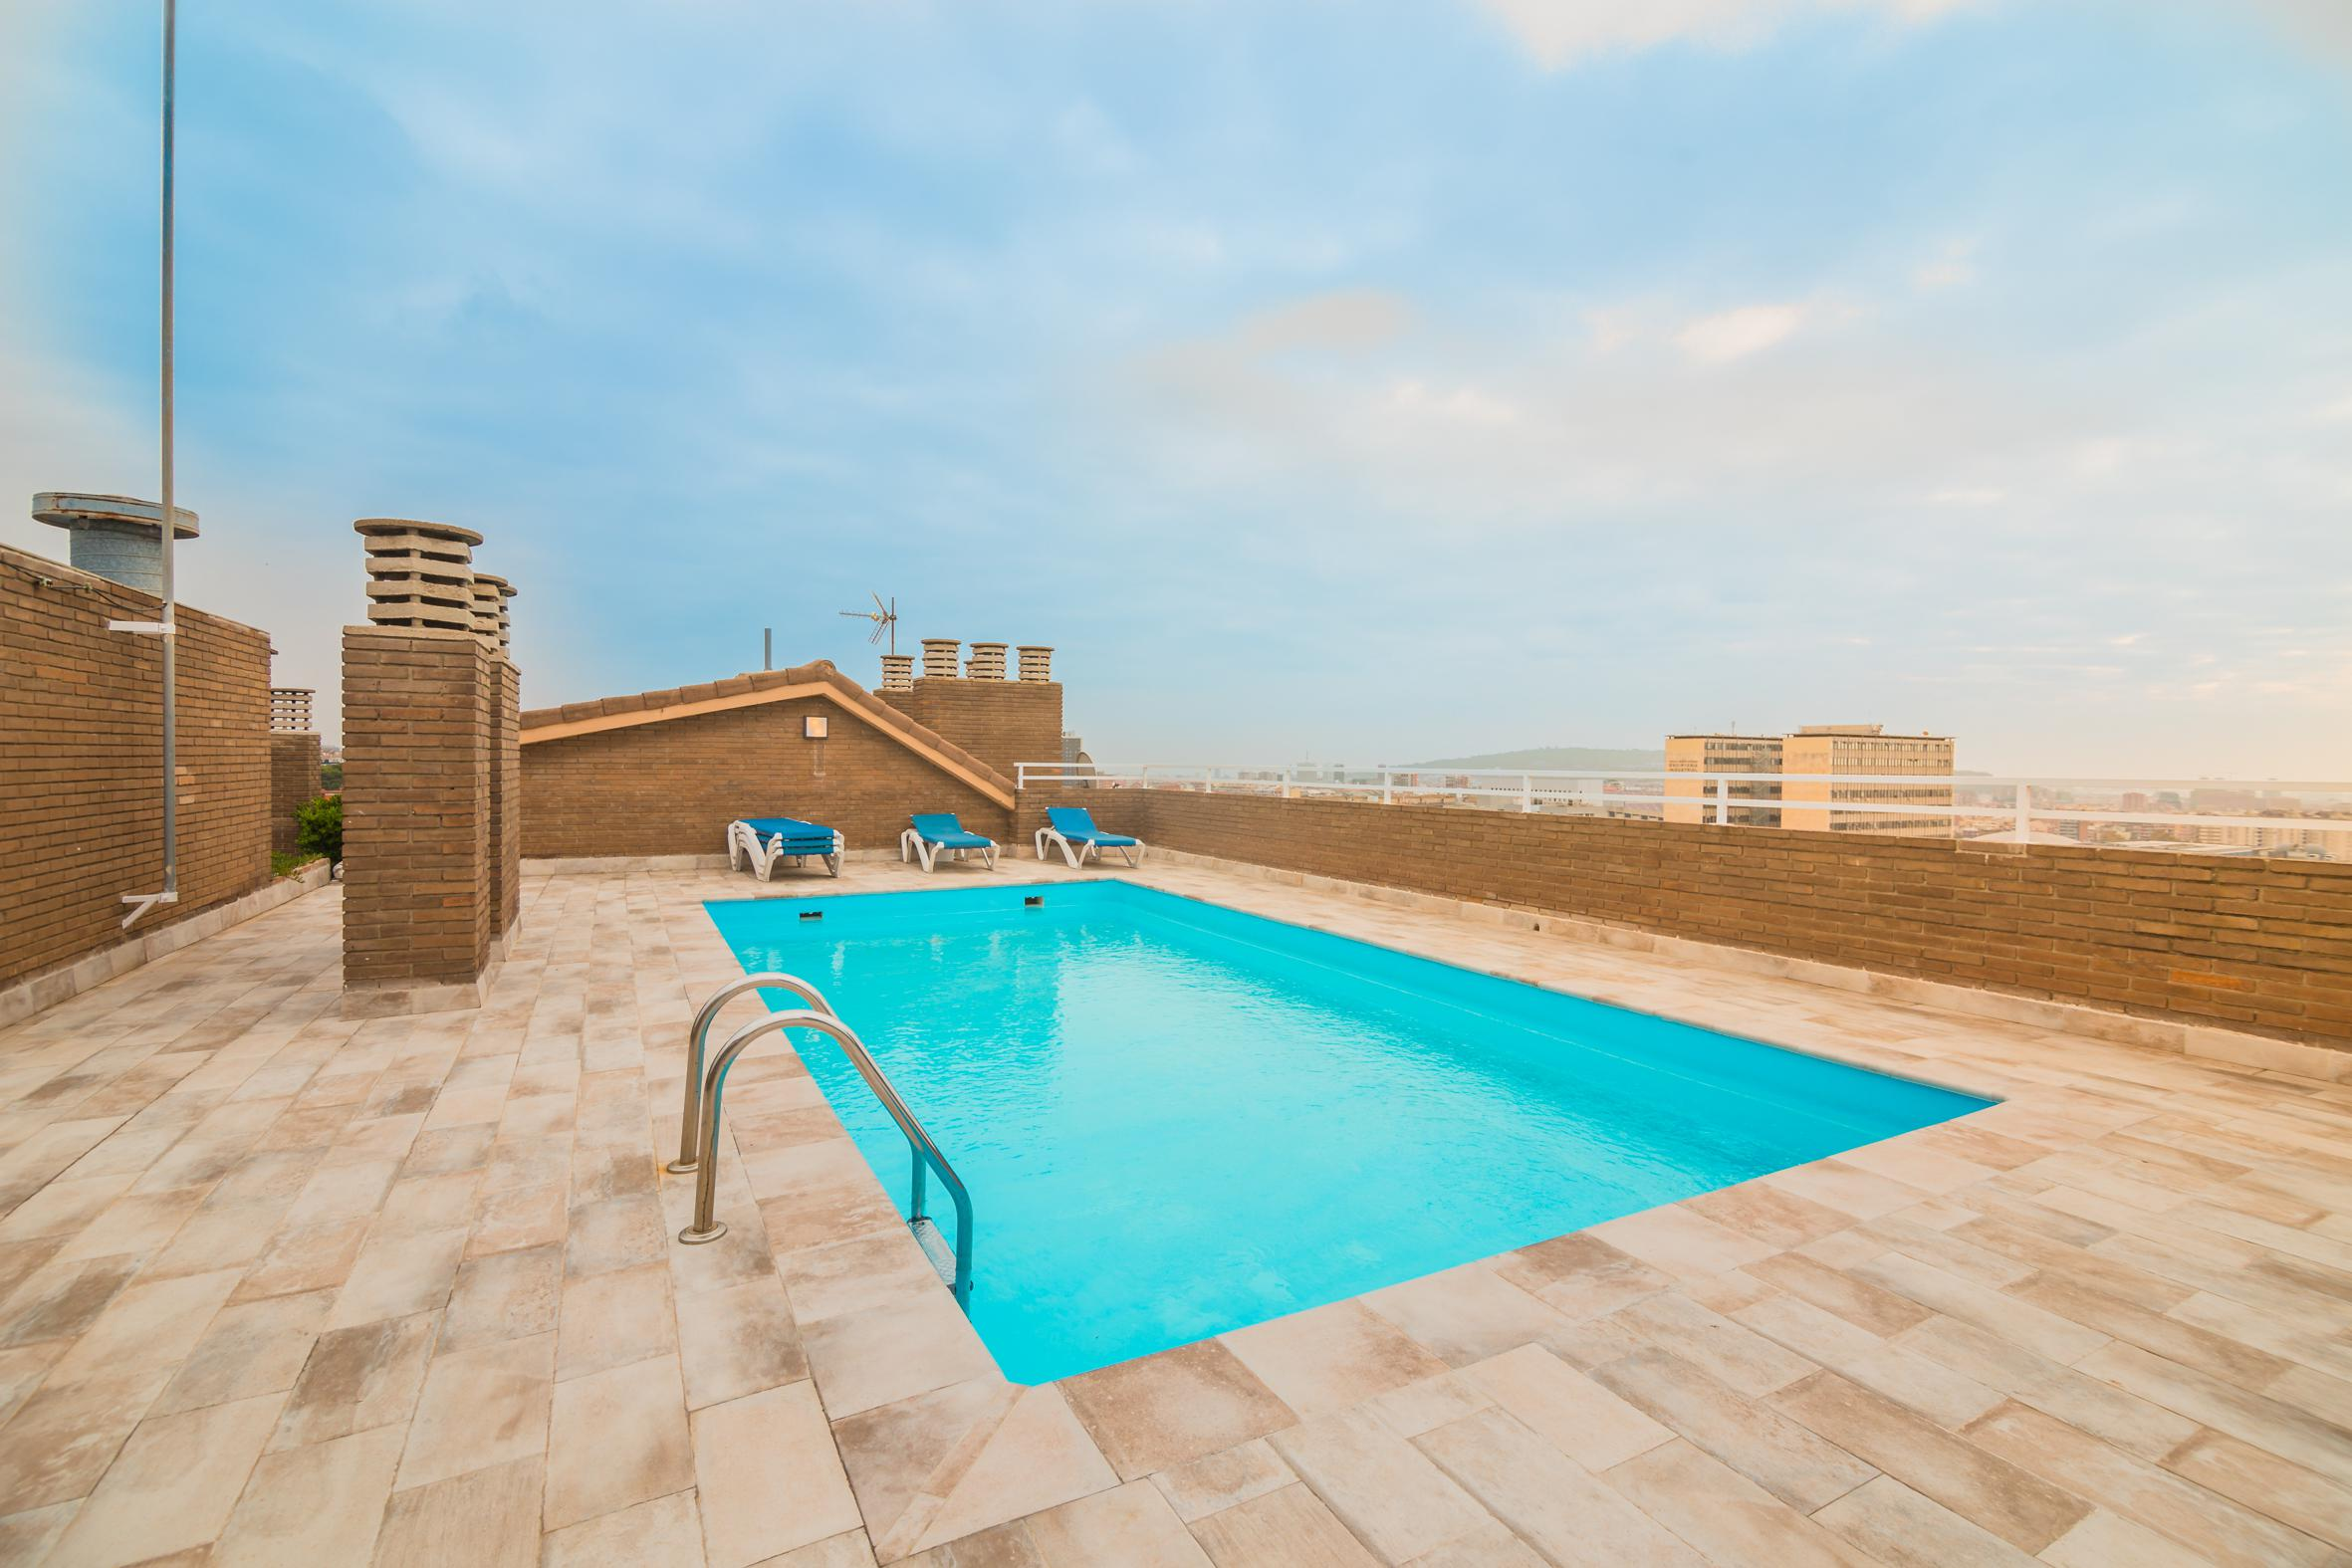 246902 Flat for sale in Les Corts, Pedralbes 32